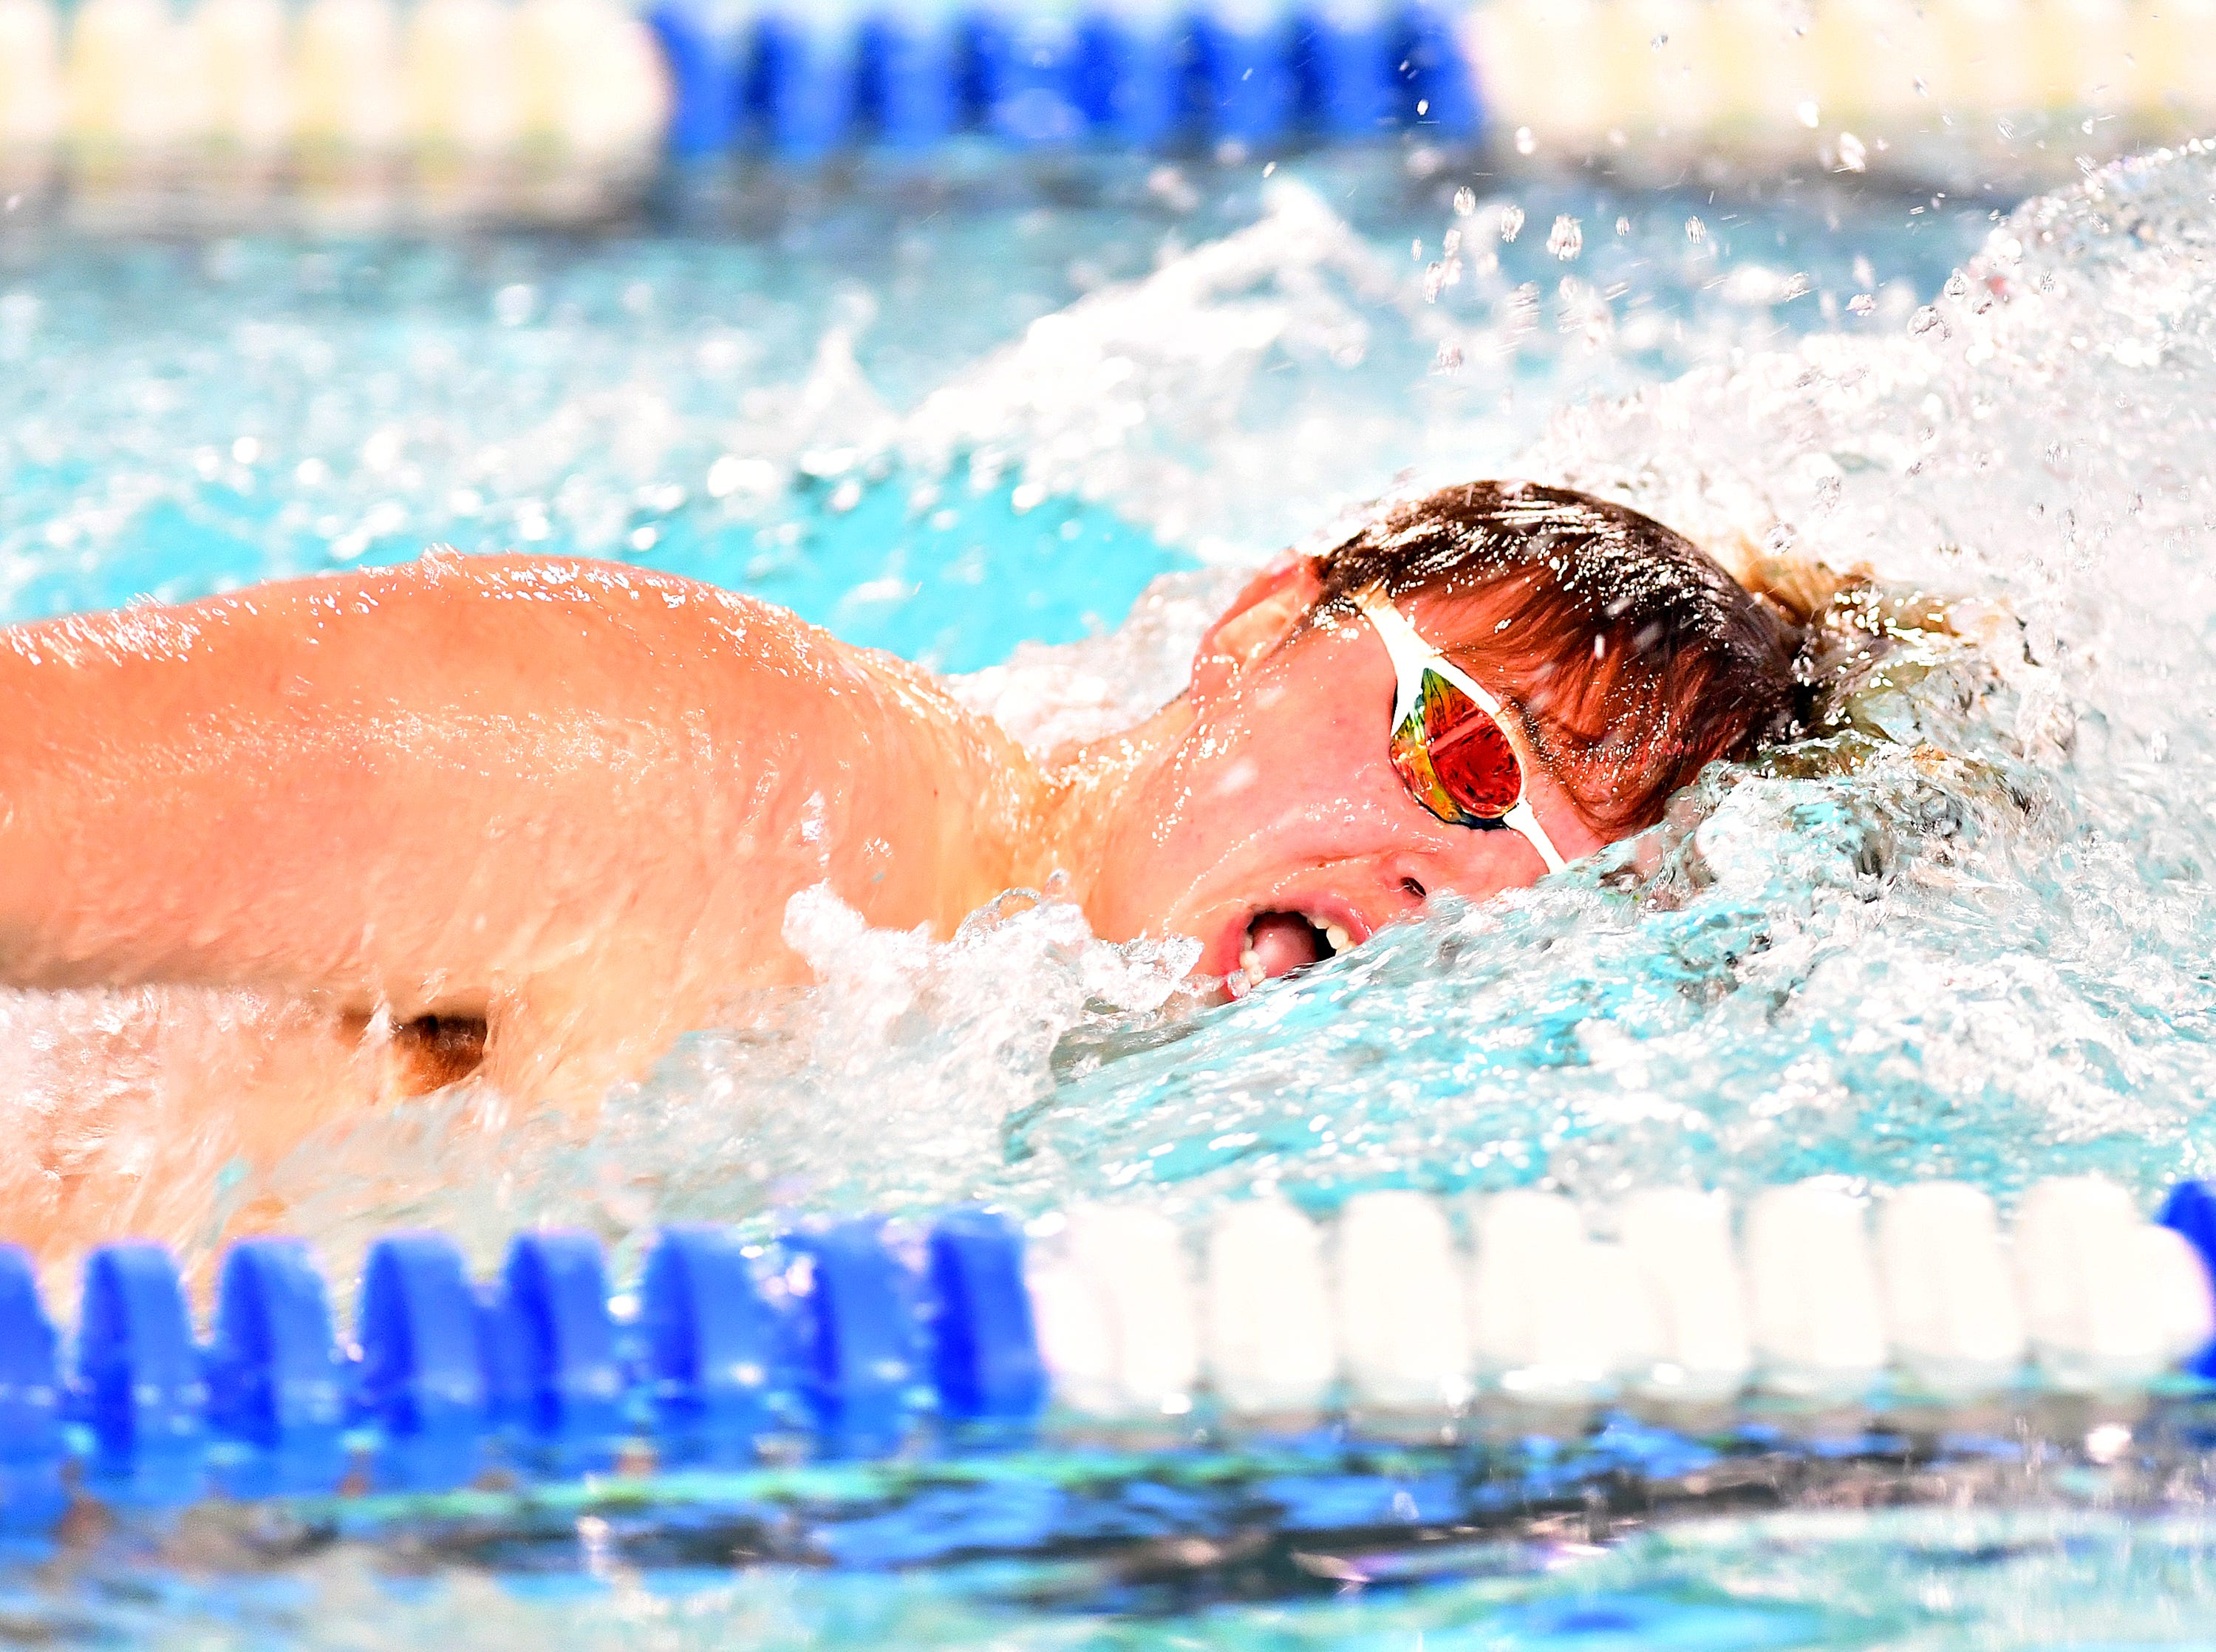 Central York's Lucas Tate wins the 200 Yard IM event at 2:04.05 during swimming action against Dallastown at Dallastown Area High School in York Township, Thursday, Jan. 10, 2019. Dawn J. Sagert photo